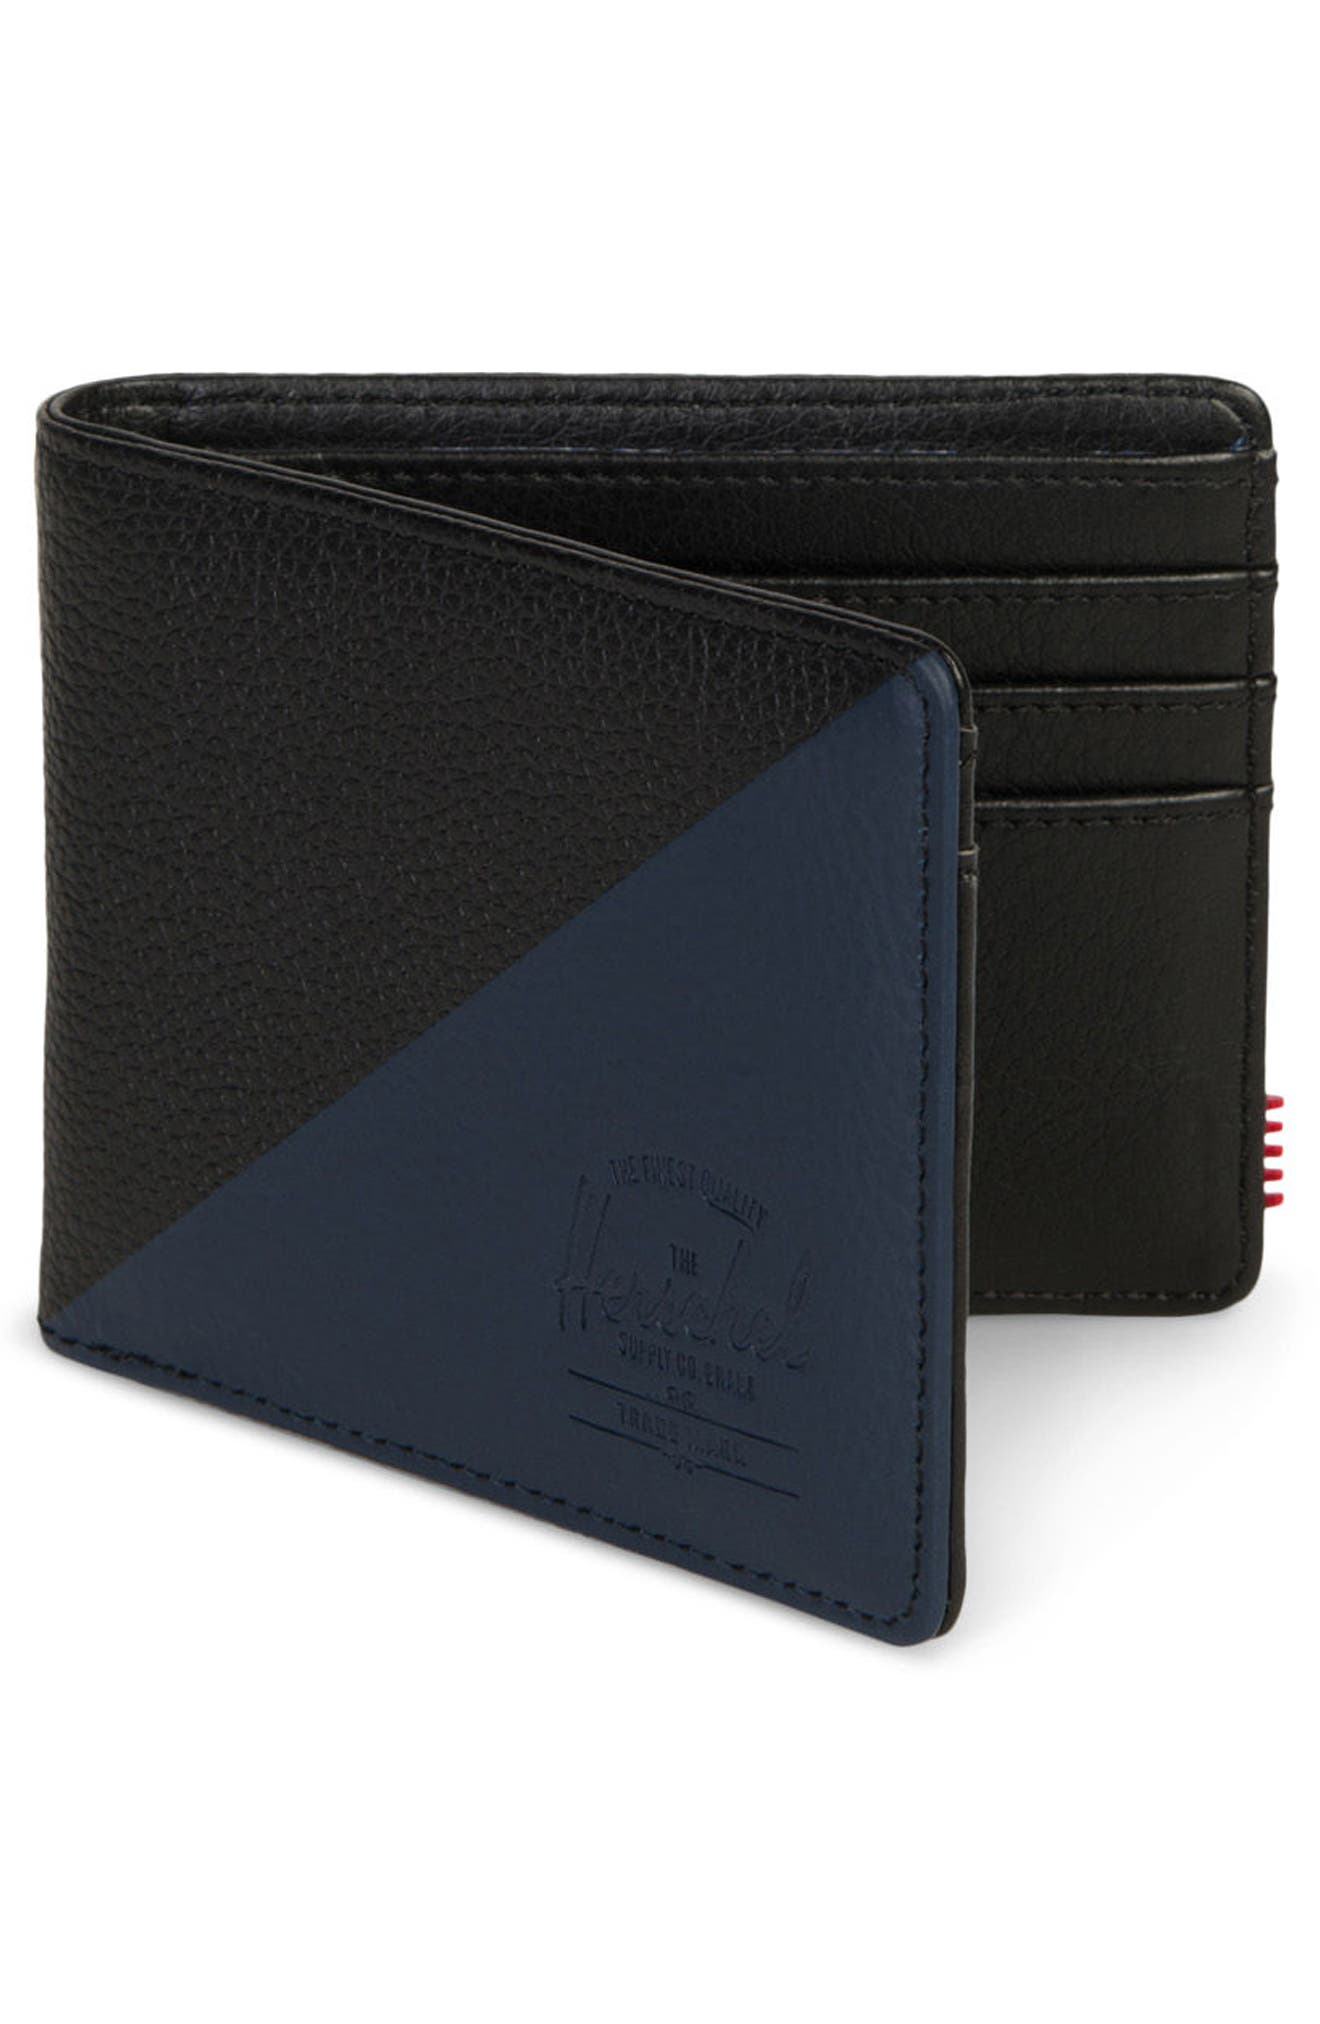 Hank Leather Wallet,                             Alternate thumbnail 2, color,                             001